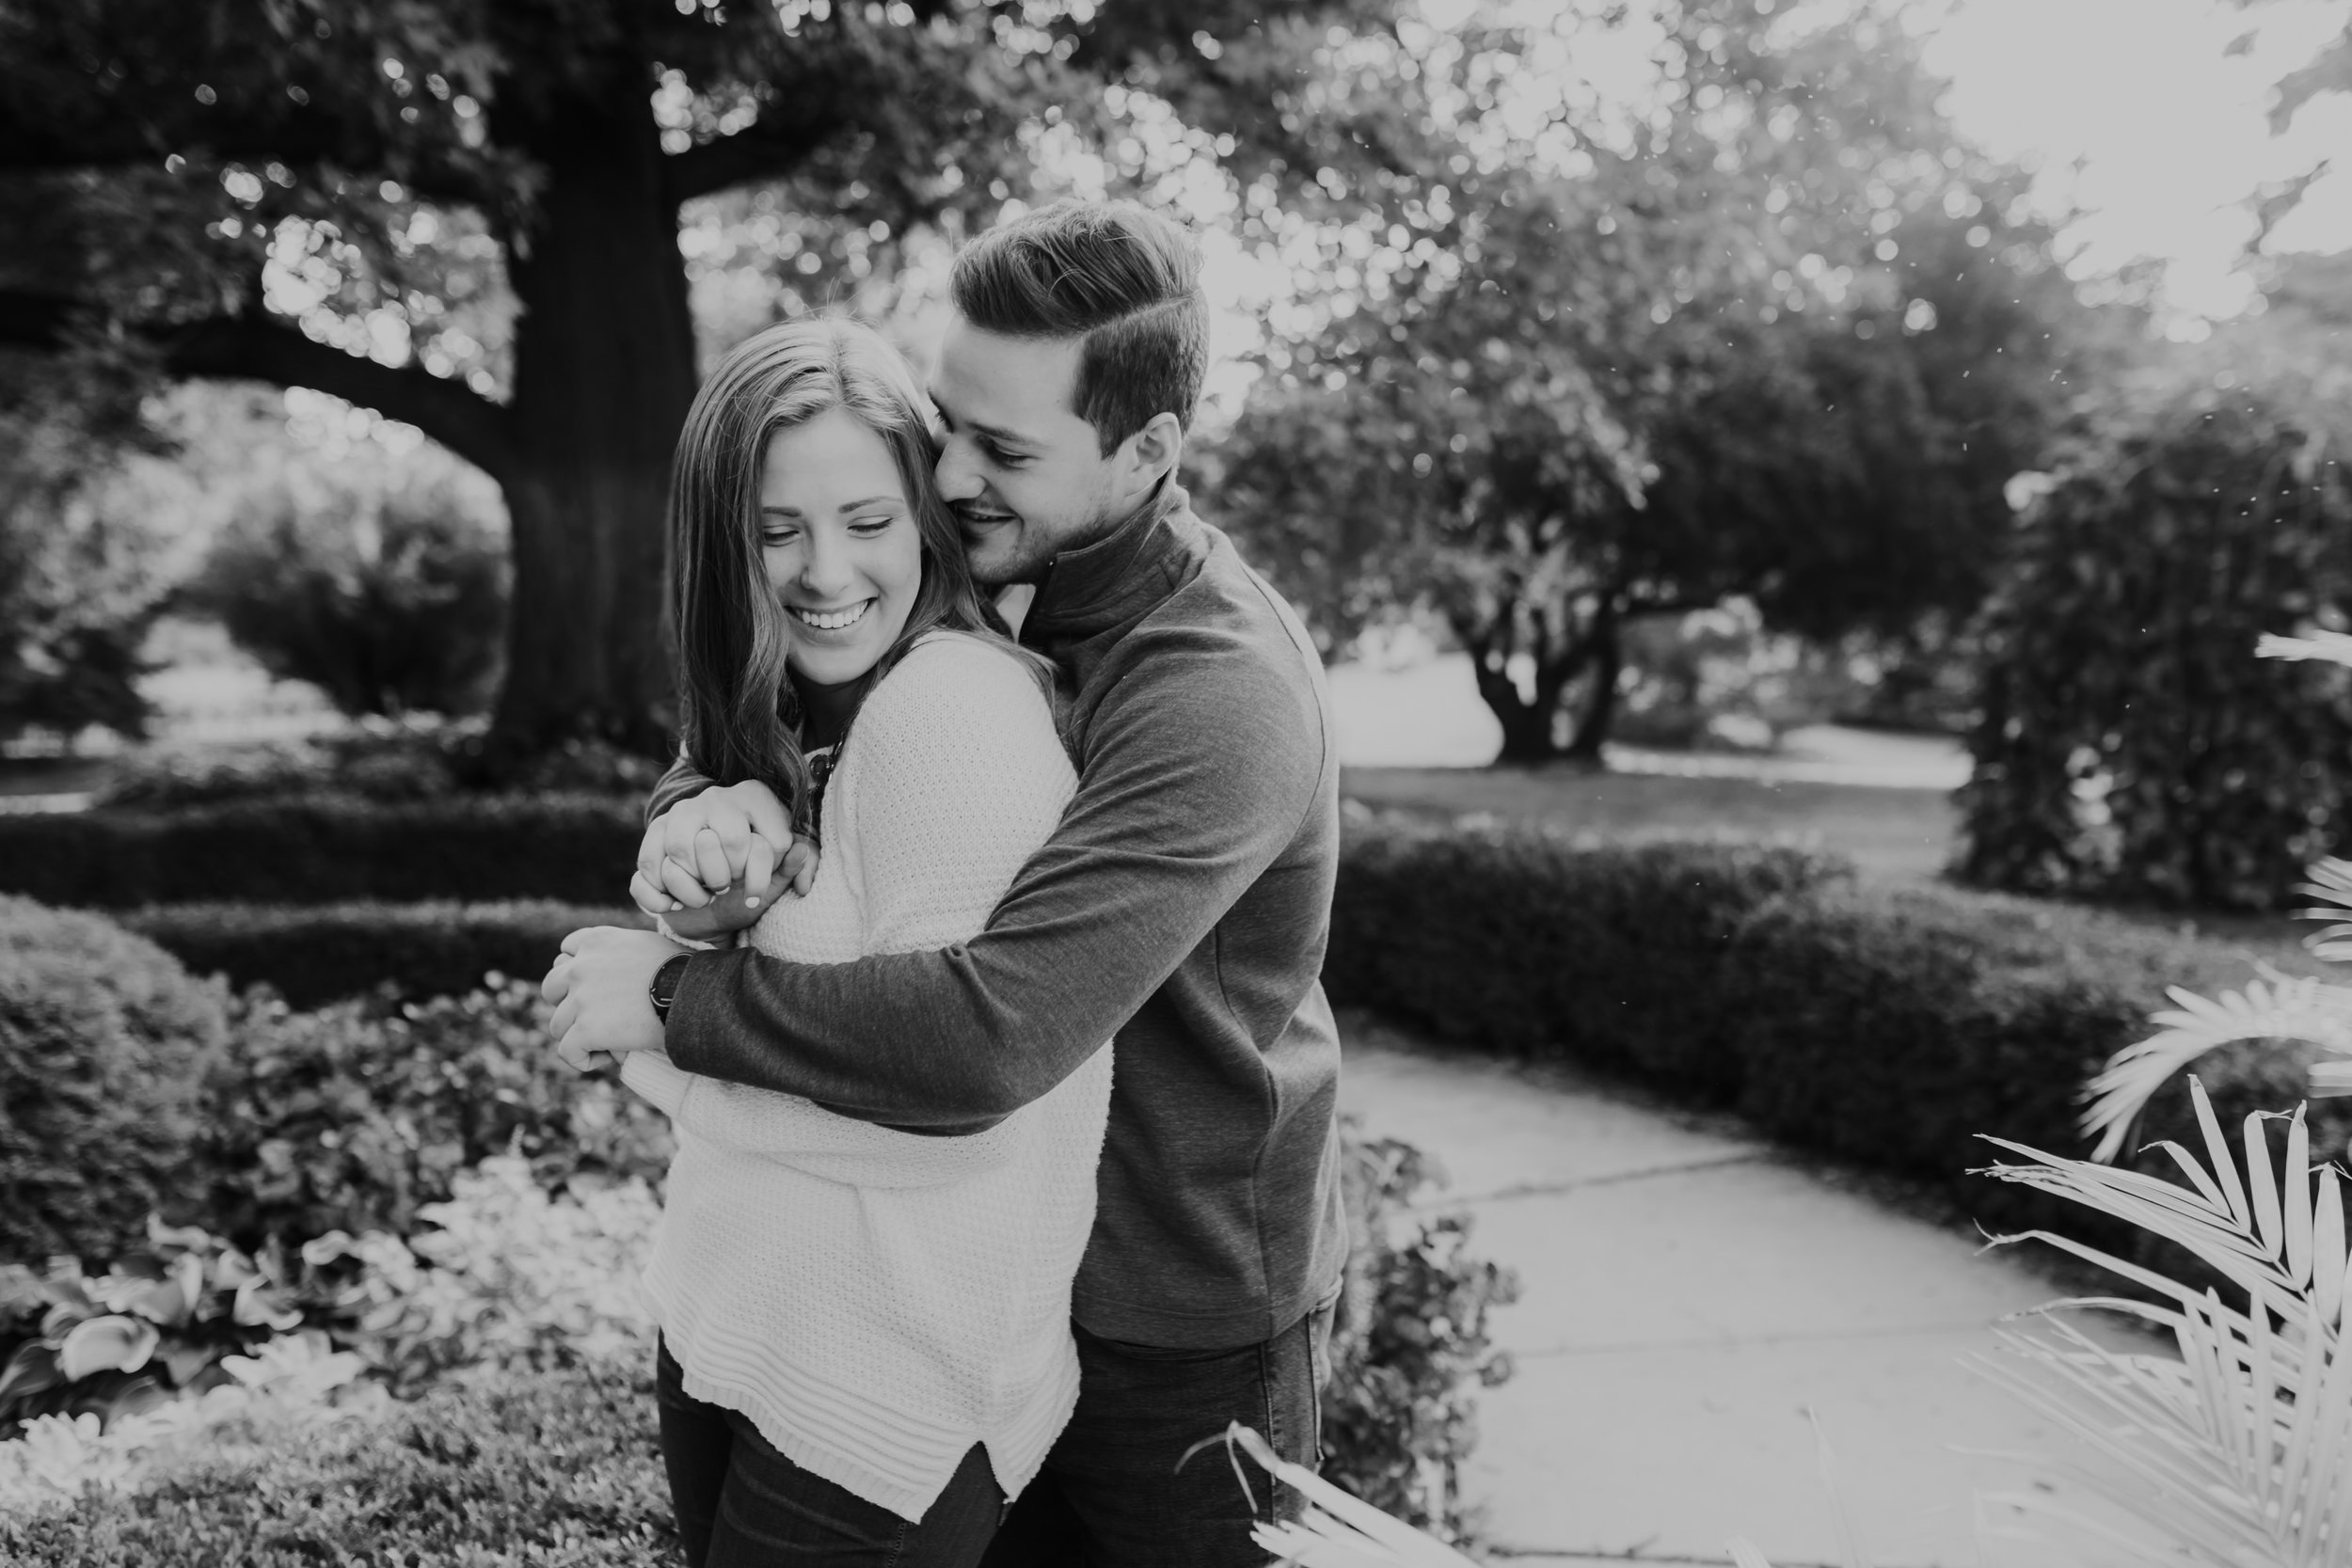 Michelle & Sam - Engaged - Nathaniel Jensen Photography - Omaha Nebraska Wedding Photograper - Omaha Nebraska Engagement Session-18.jpg